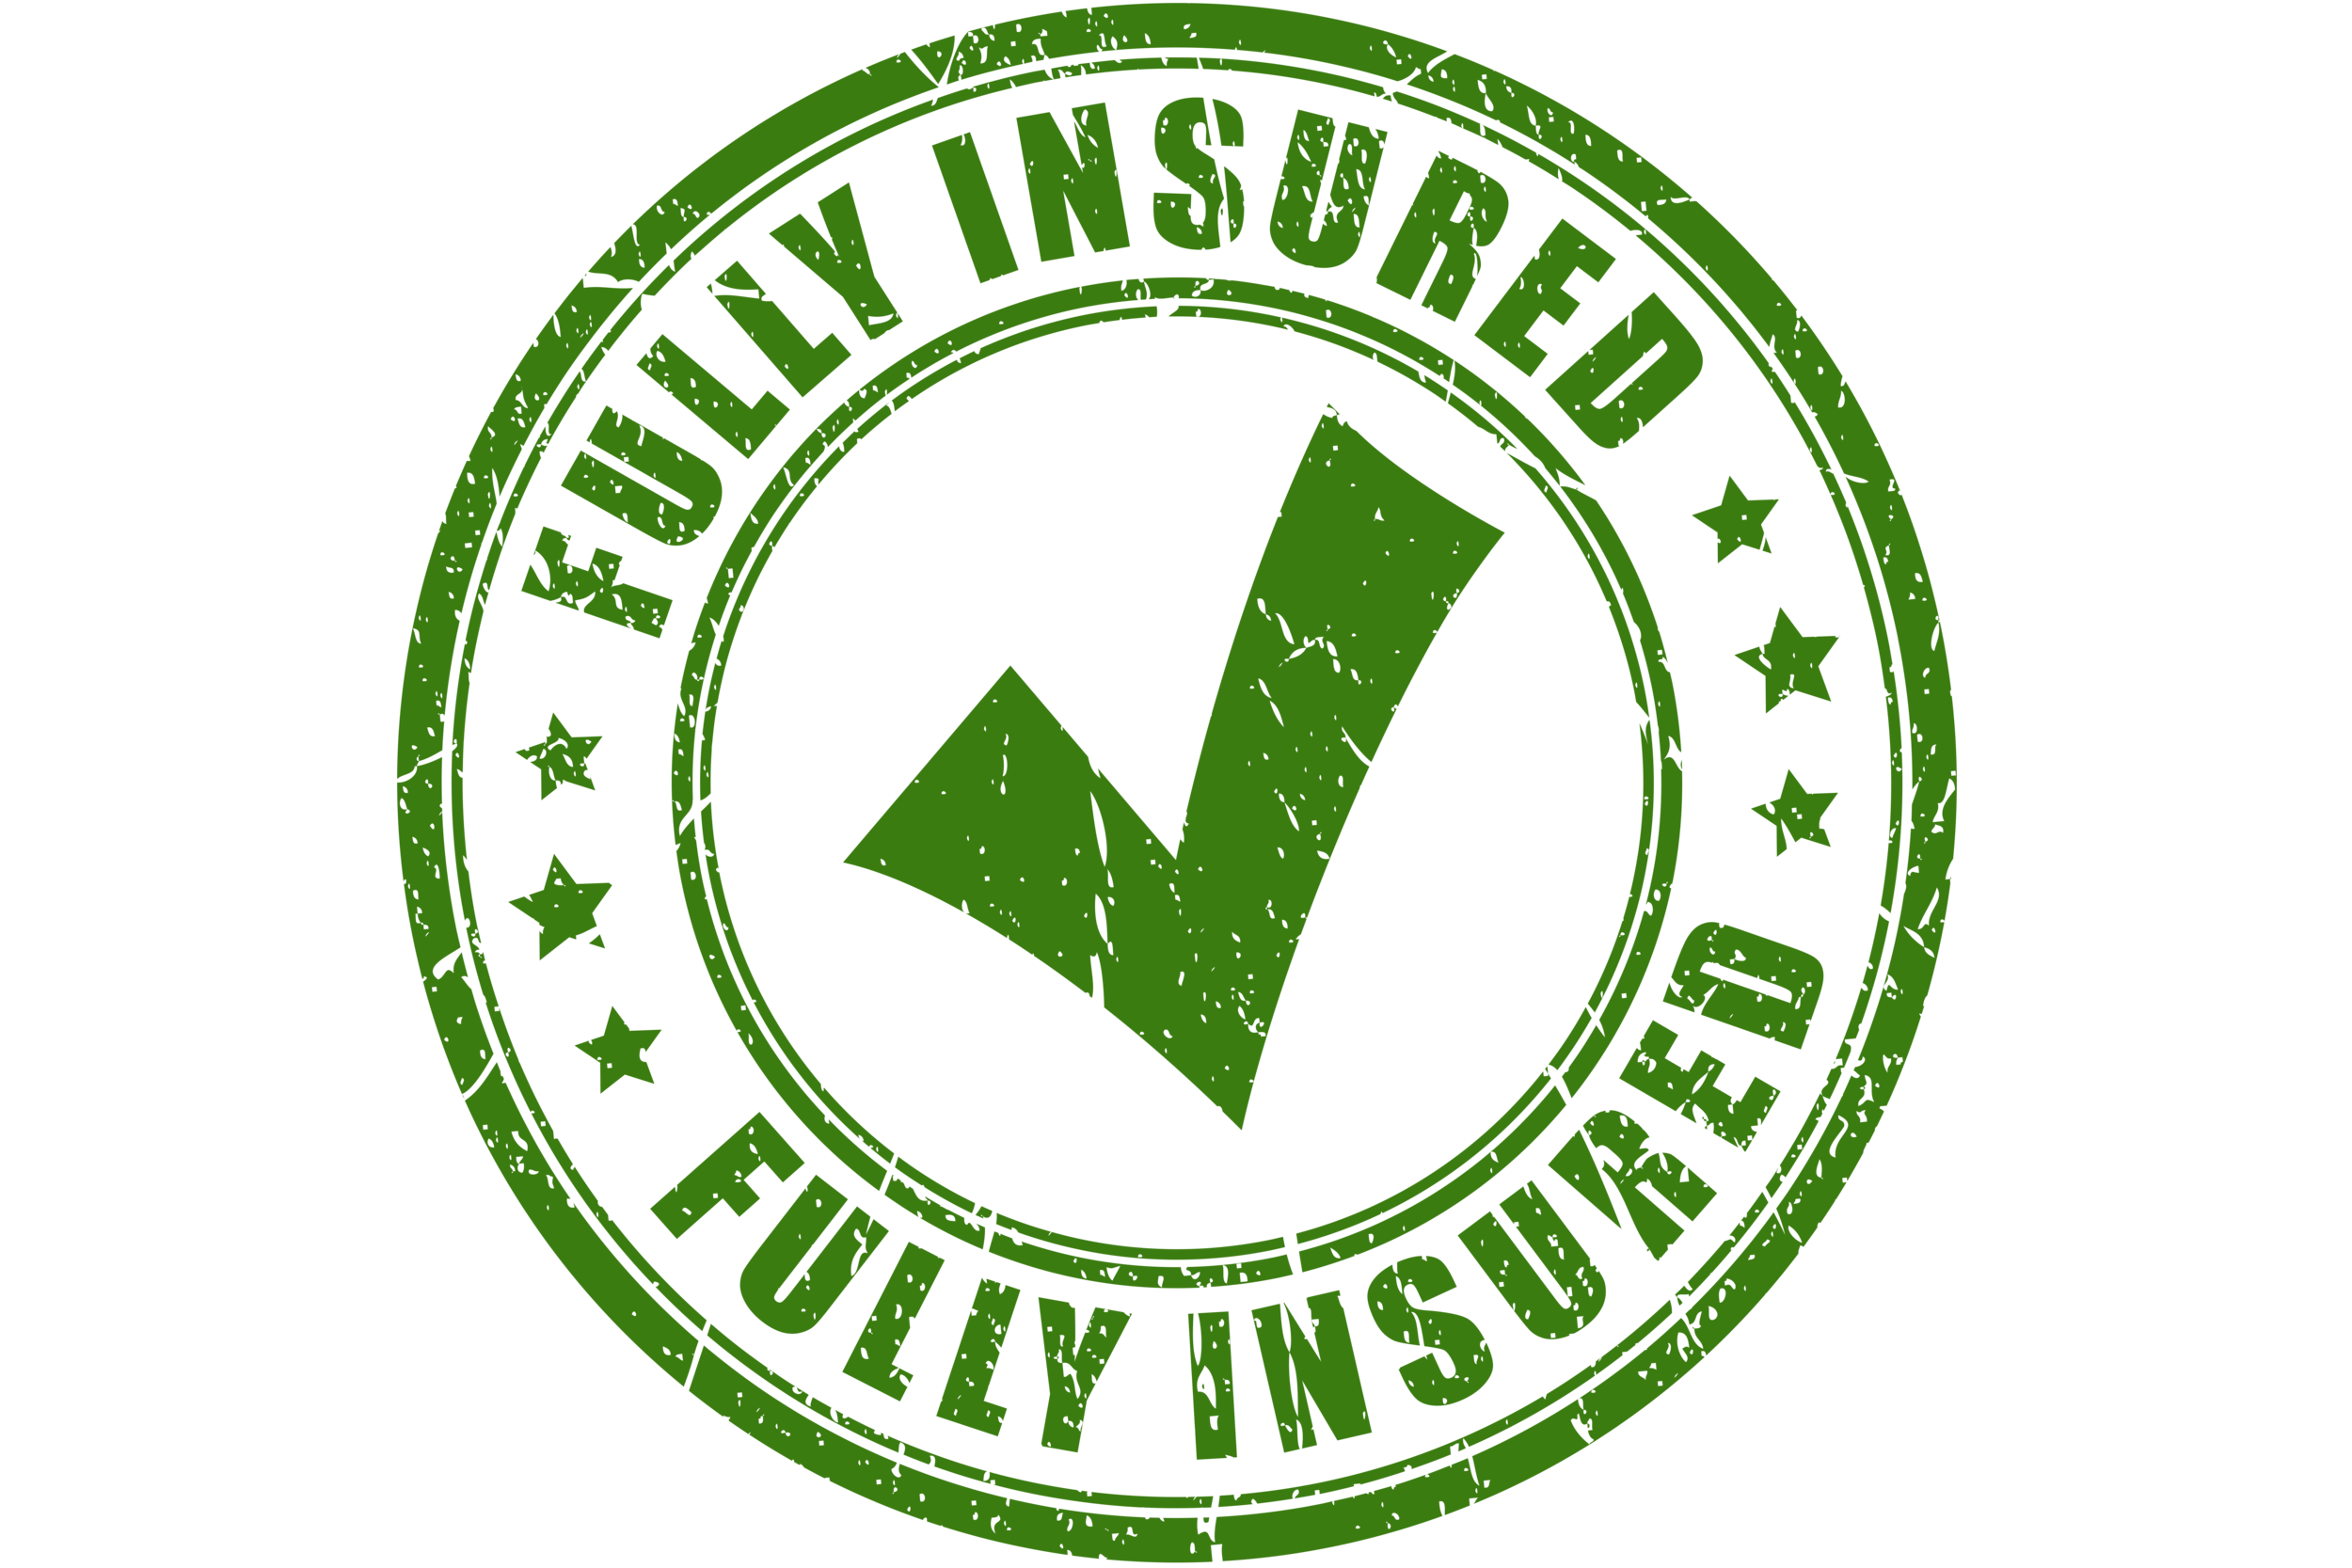 LIABILITY INSURED - Don't worry, you're covered! Our liability coverage of $1,000,000 ensures that you always have peace of mind.